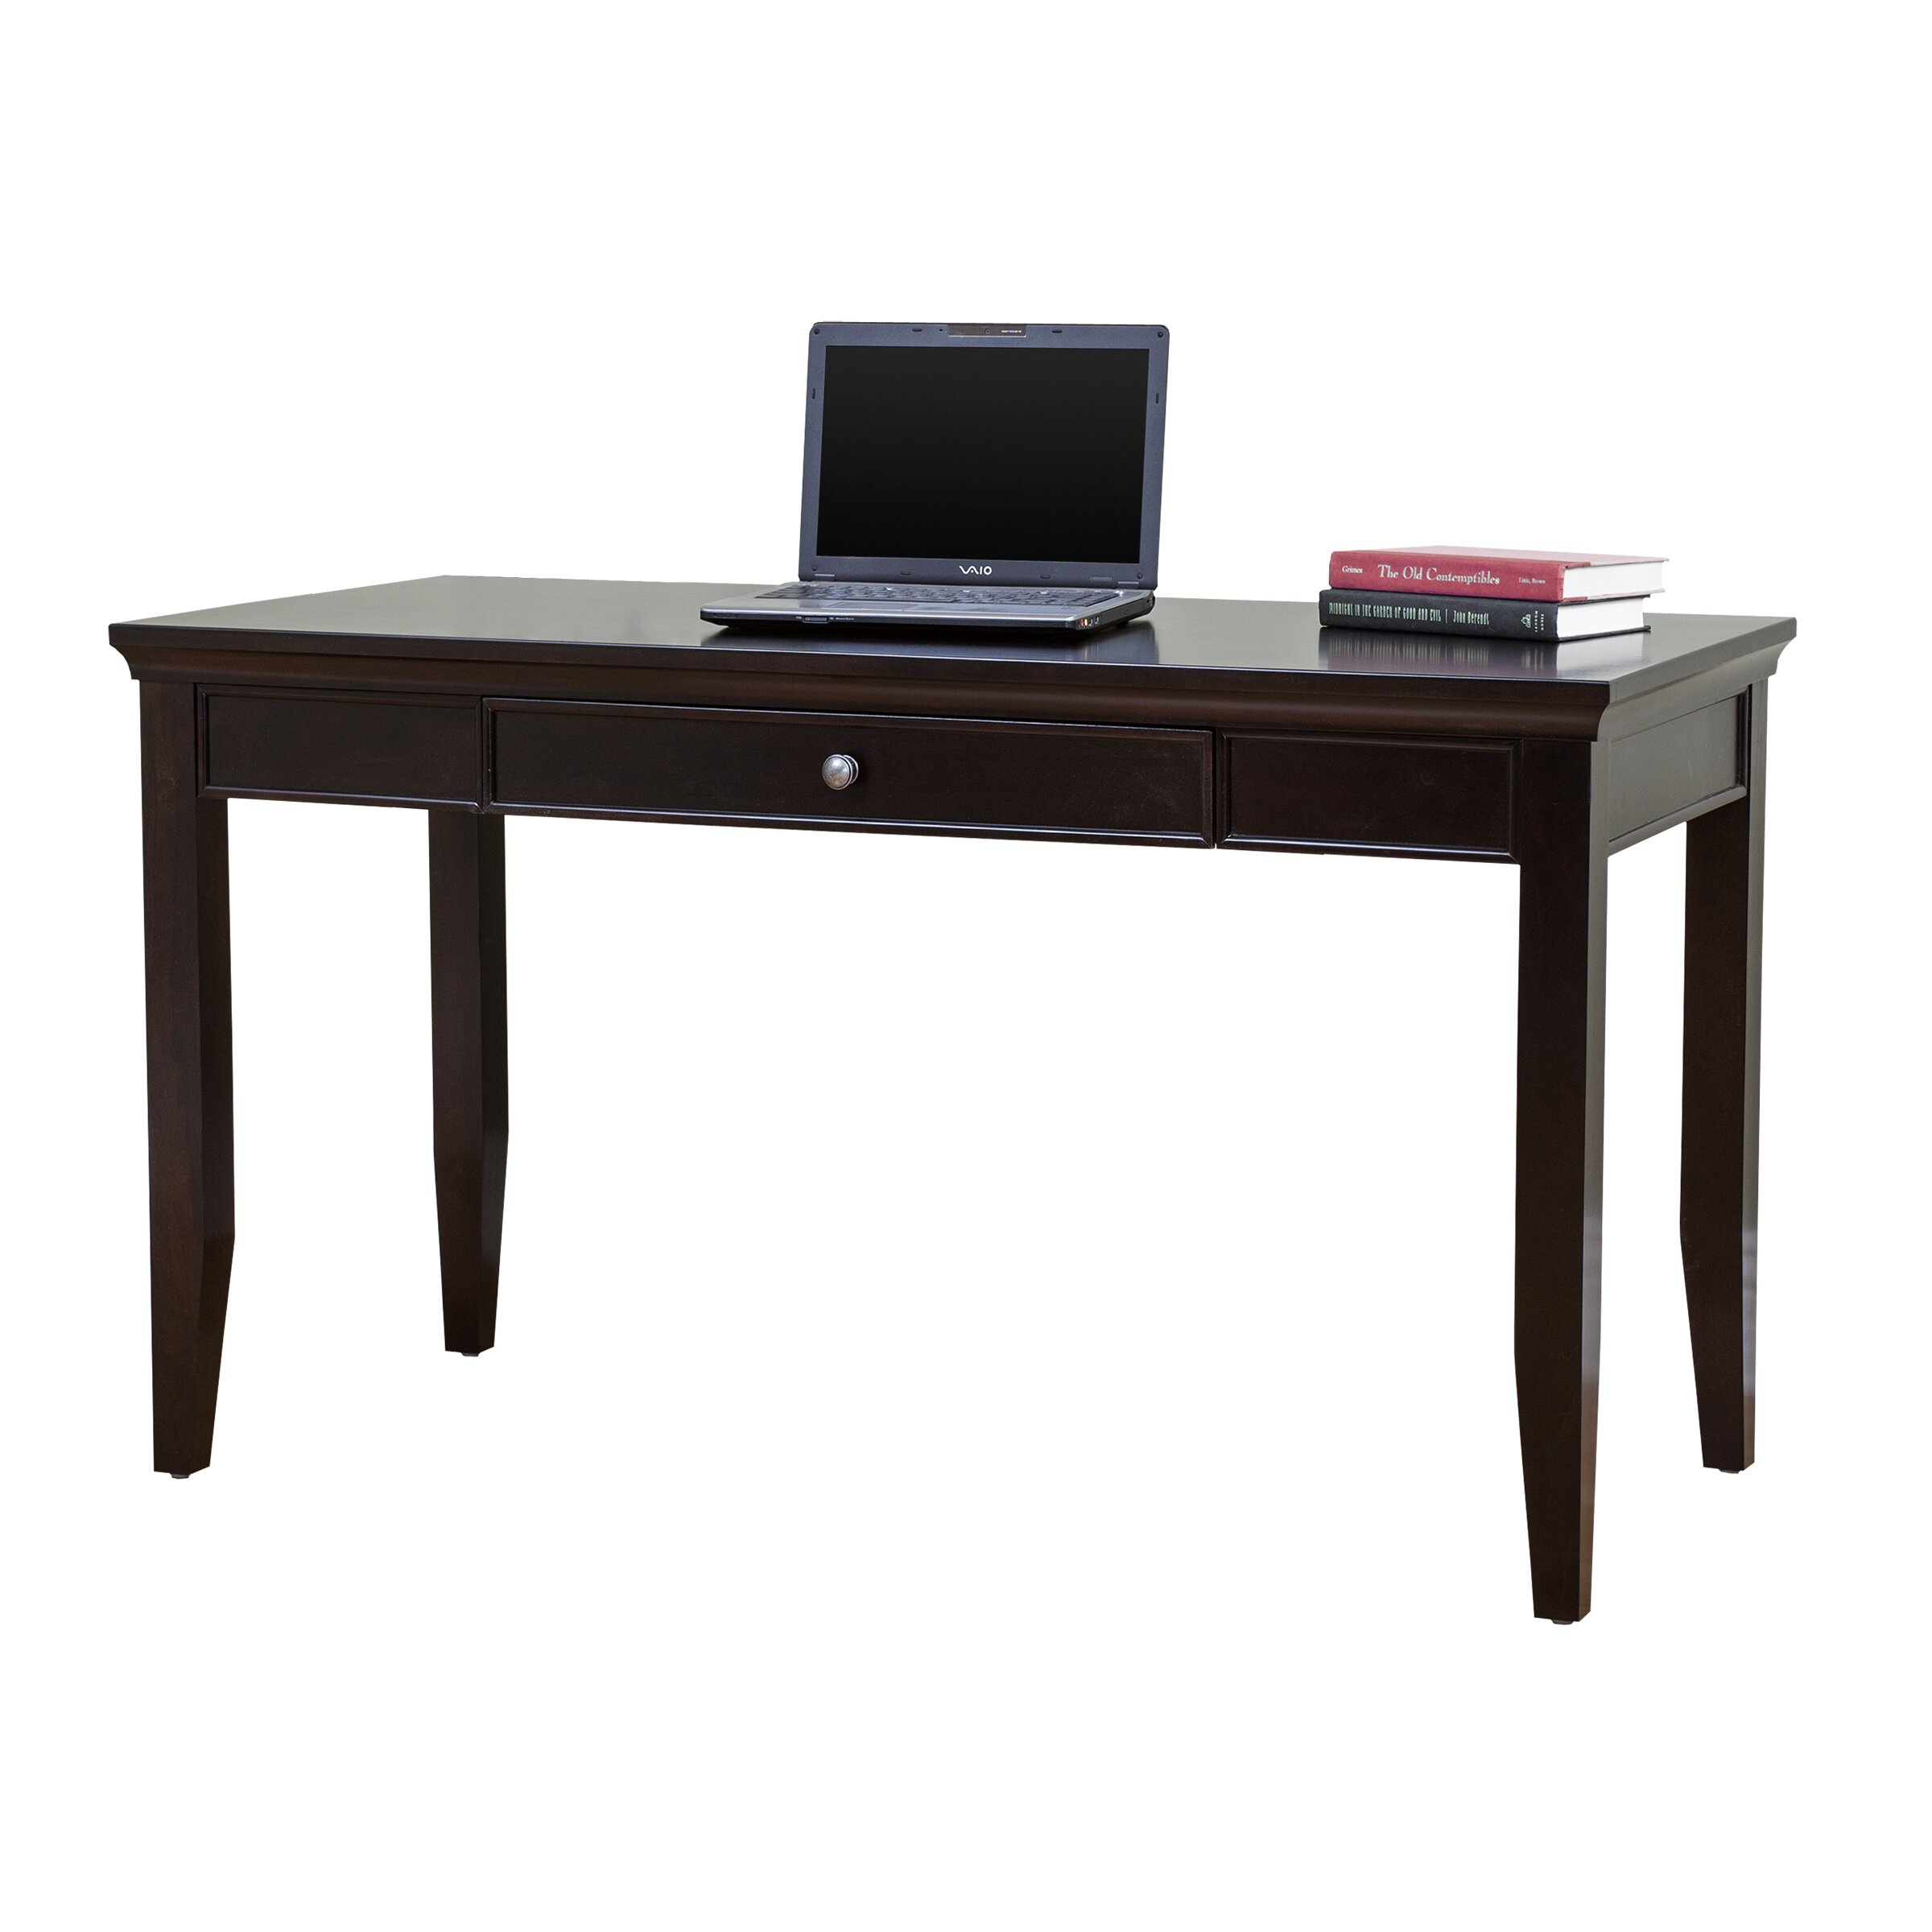 kathy ireland writing desk Writing desks, kathy ireland office: brands, writing desks, desks, furniture at office depot & officemax now one company.